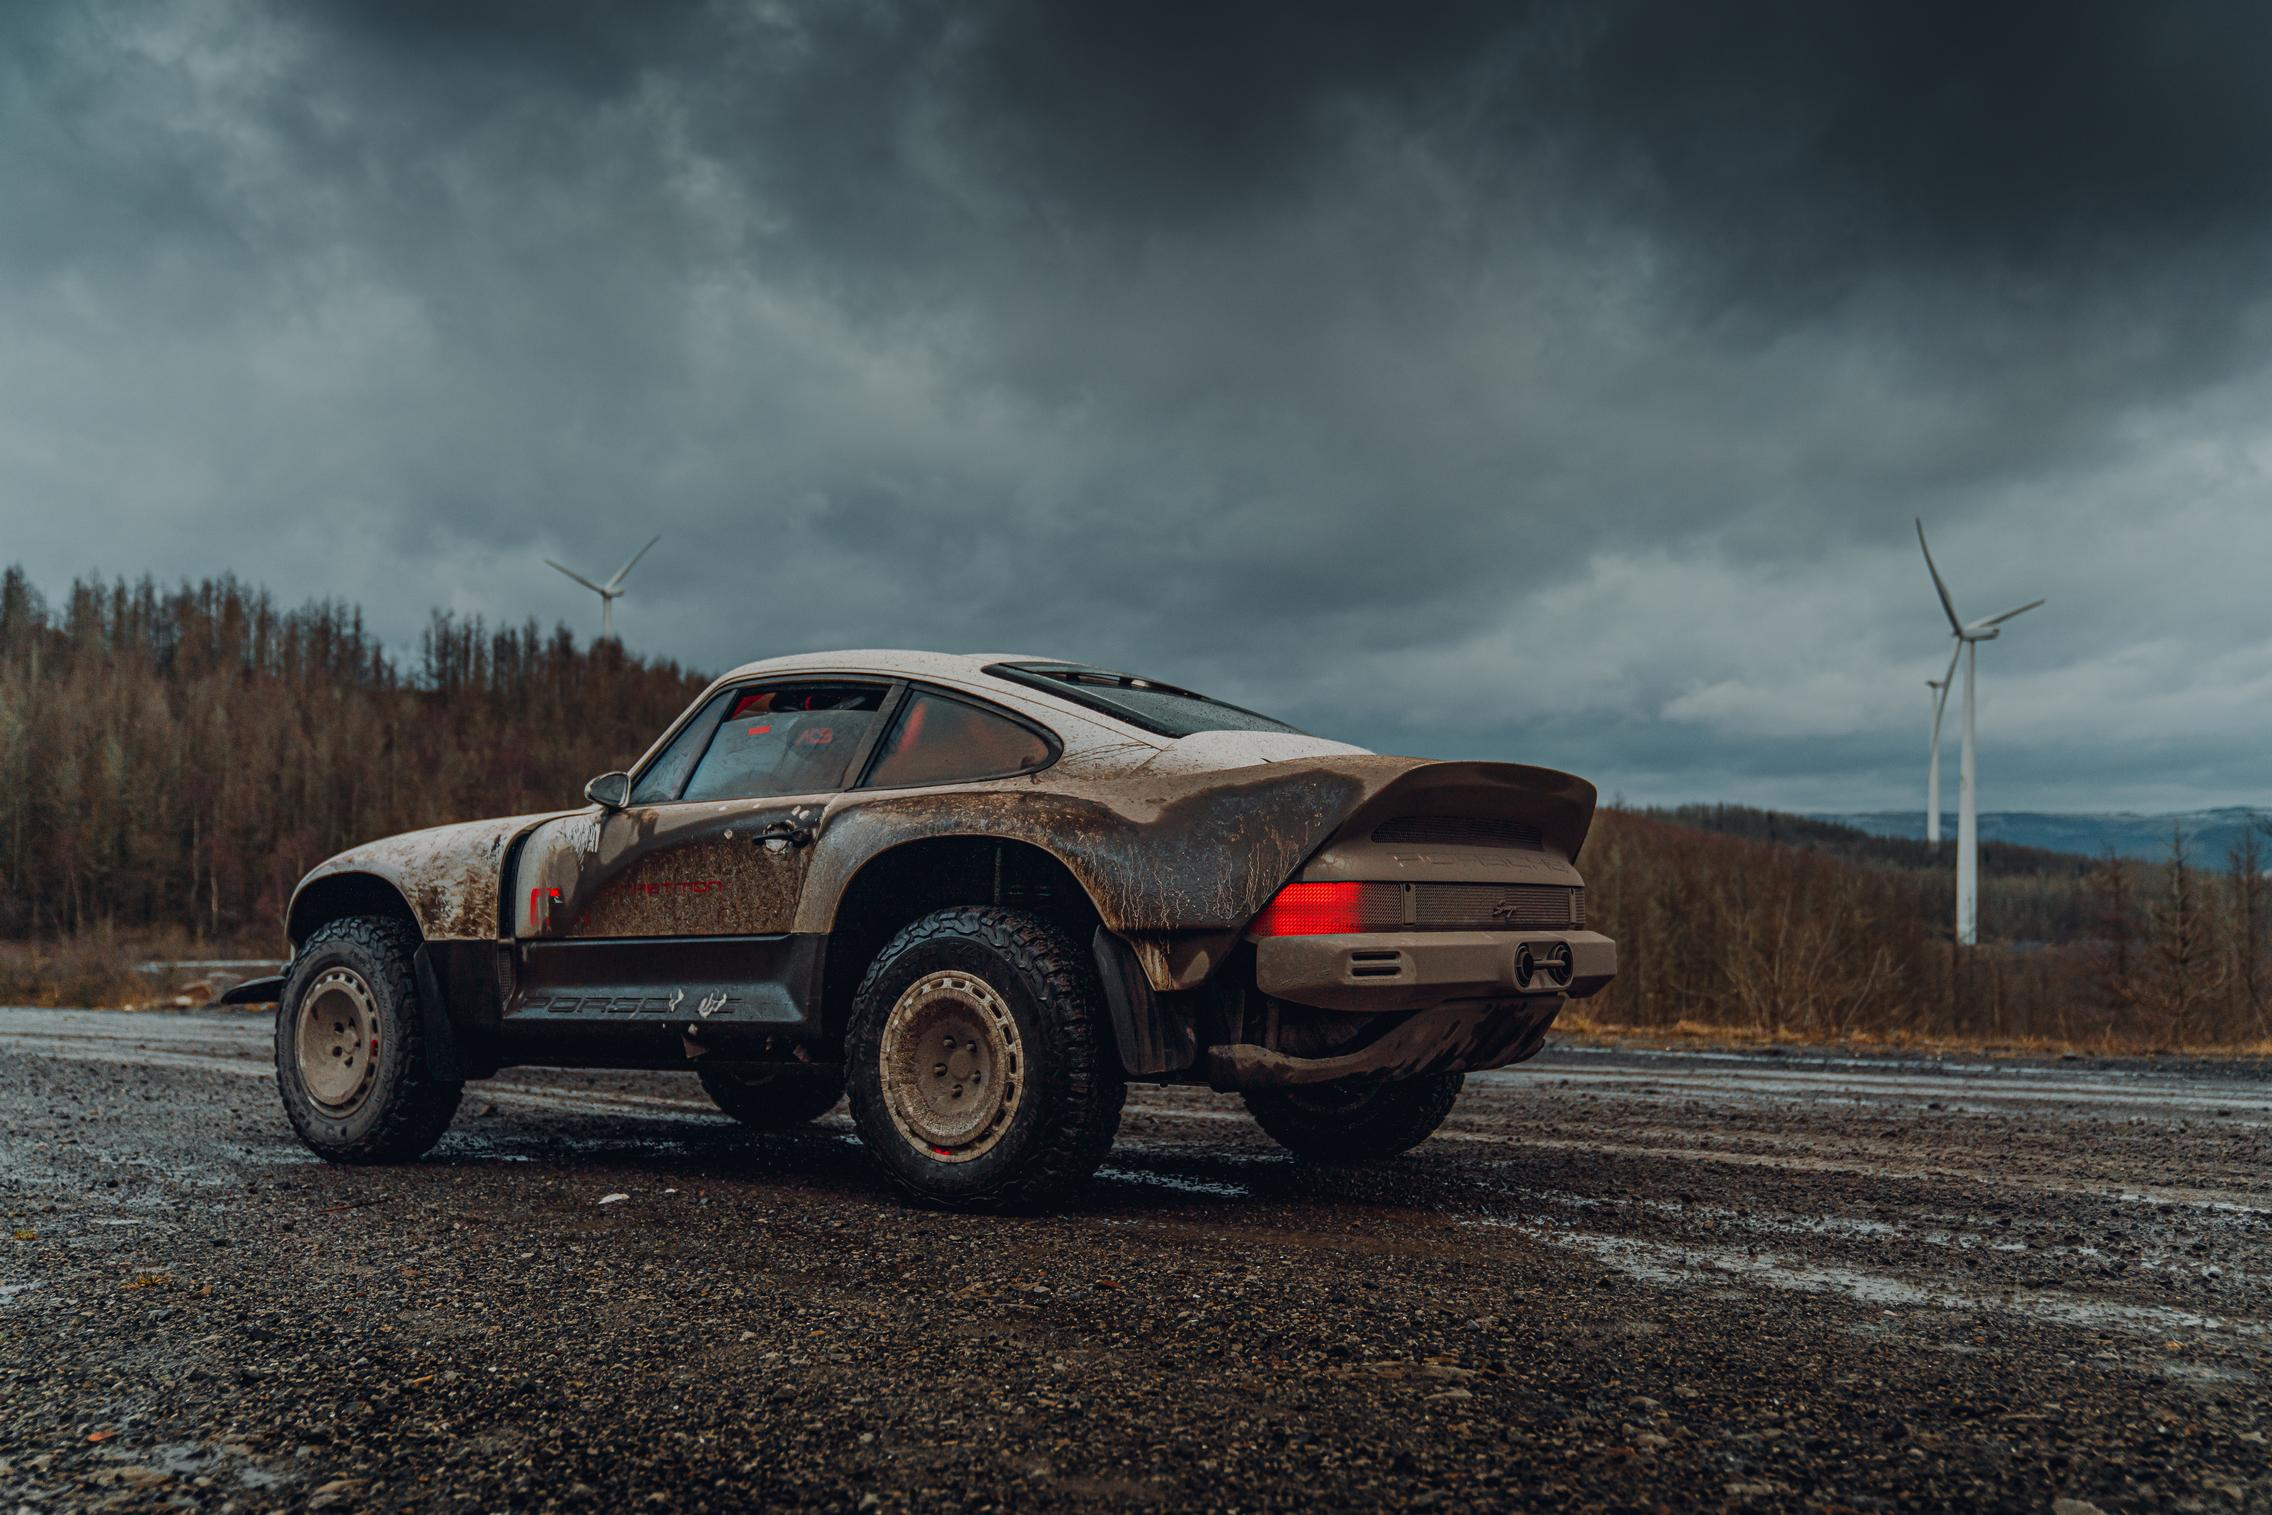 Porsche 911 Safari wallpaper